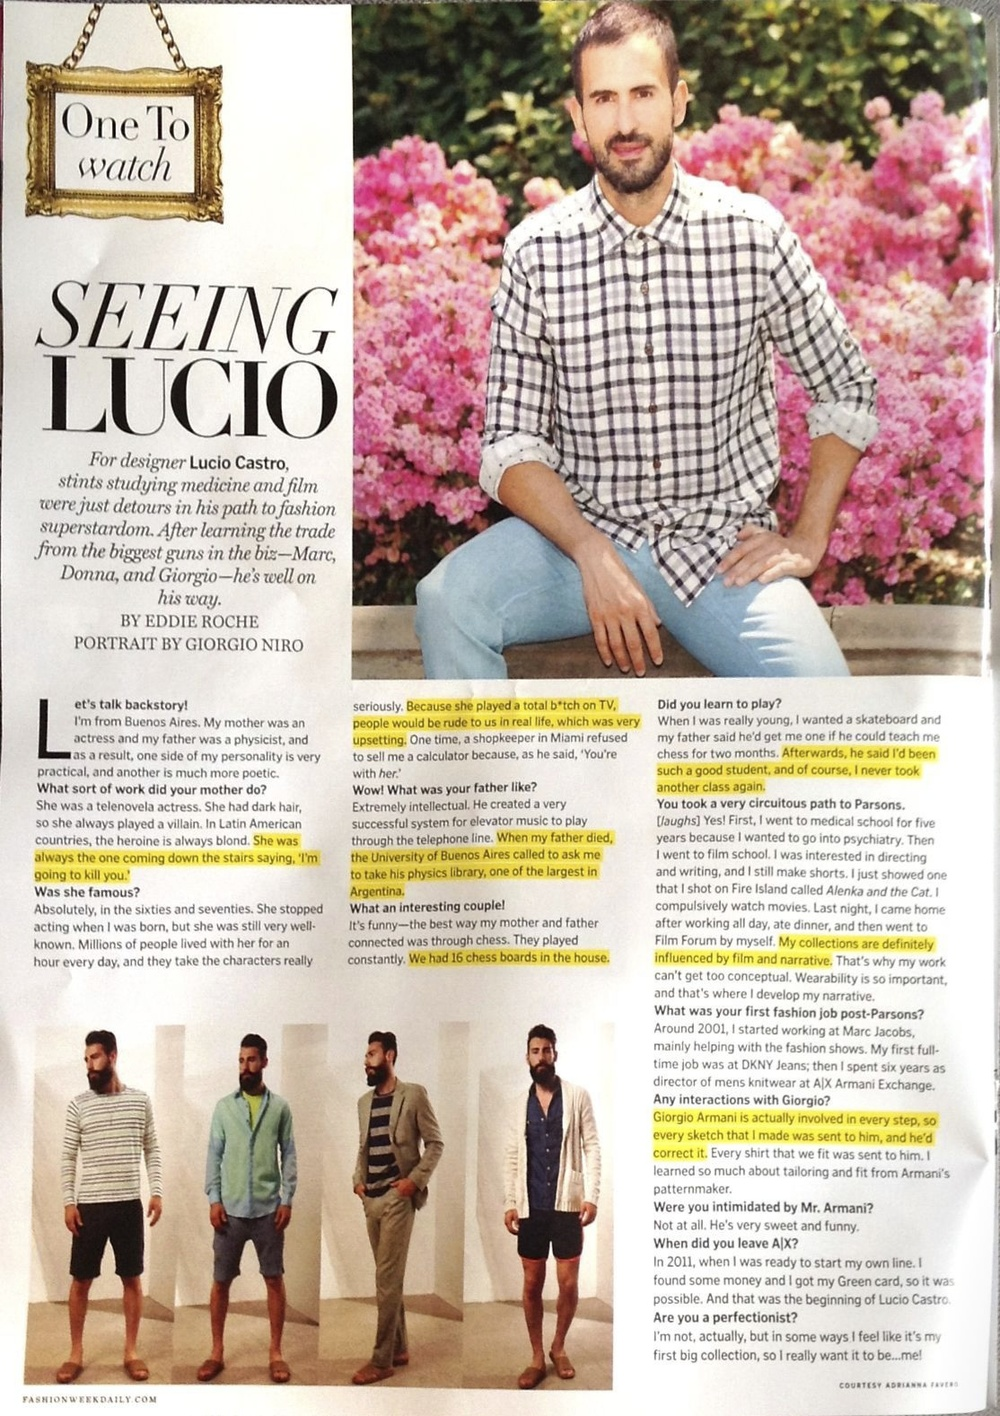 LucioCastro-DailyFrontRow copy.jpeg